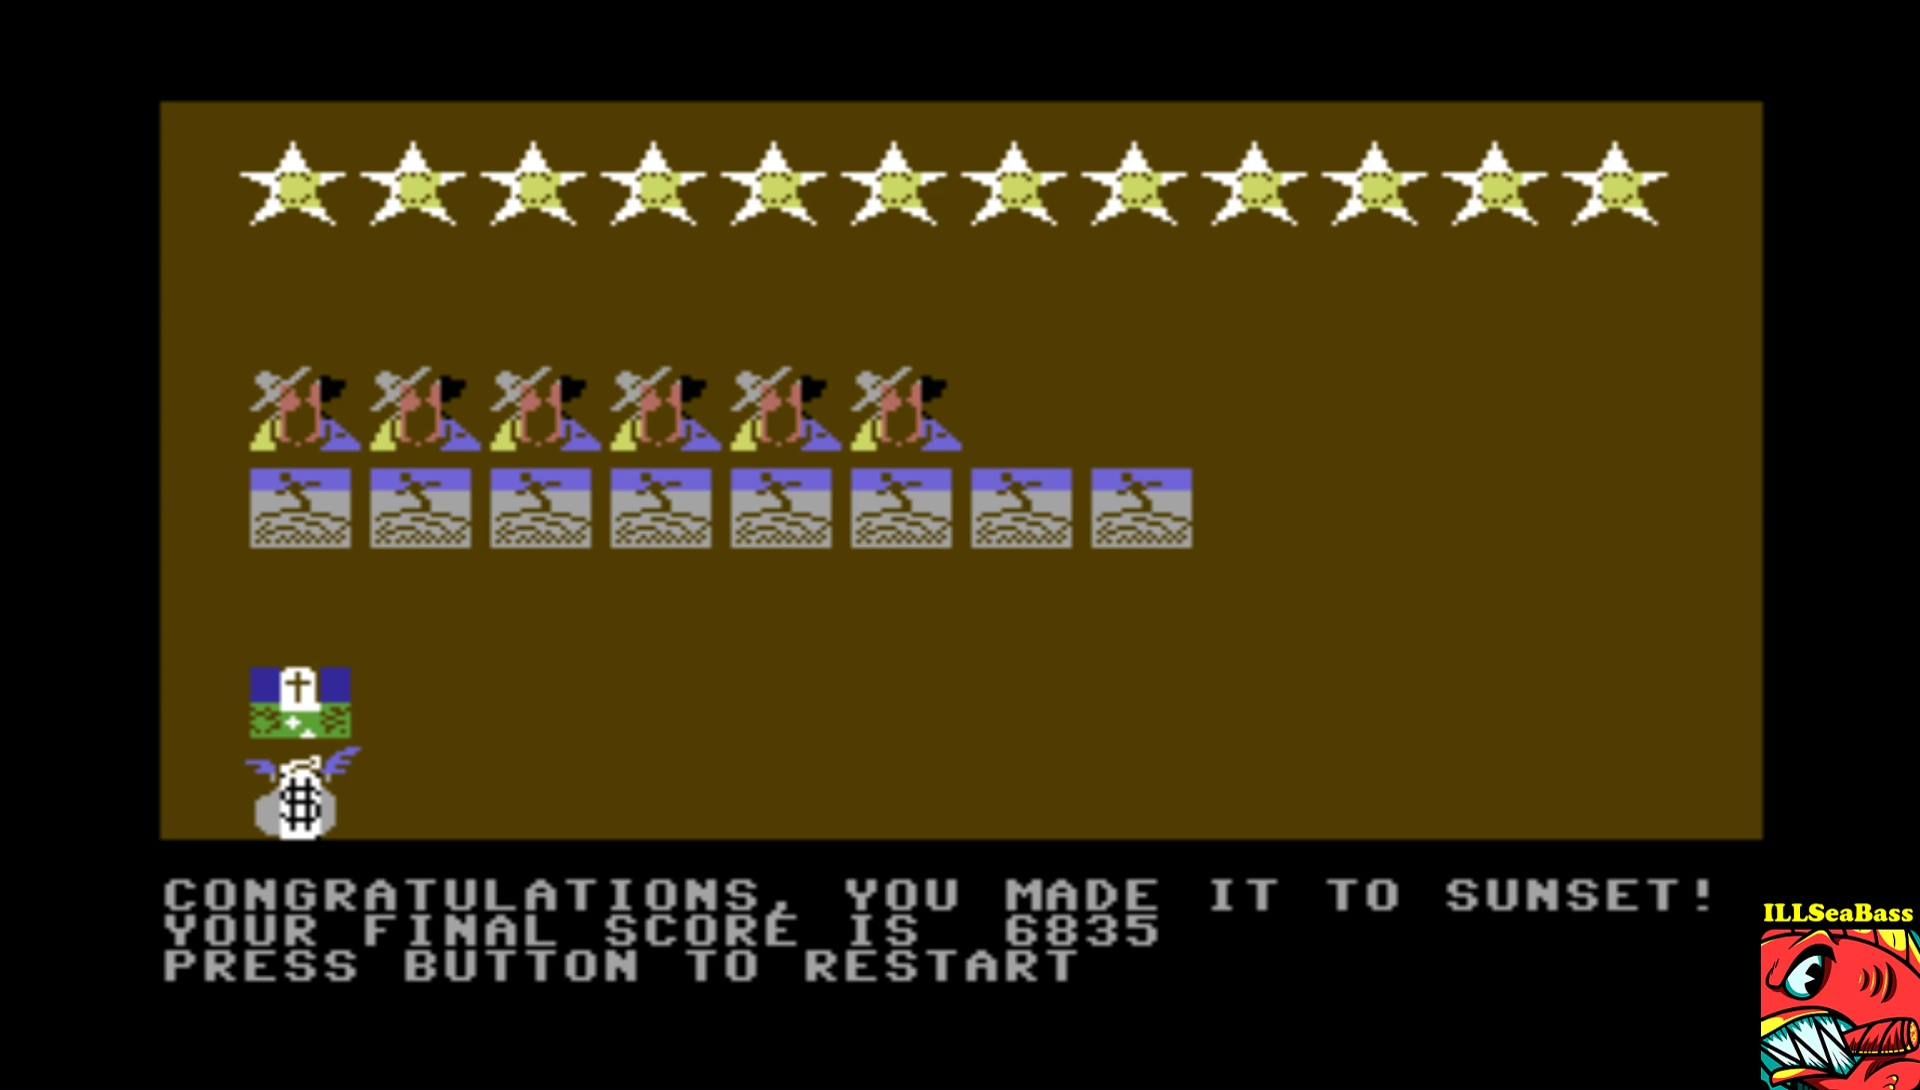 ILLSeaBass: Law of the West (Commodore 64 Emulated) 6,835 points on 2017-02-20 12:43:08